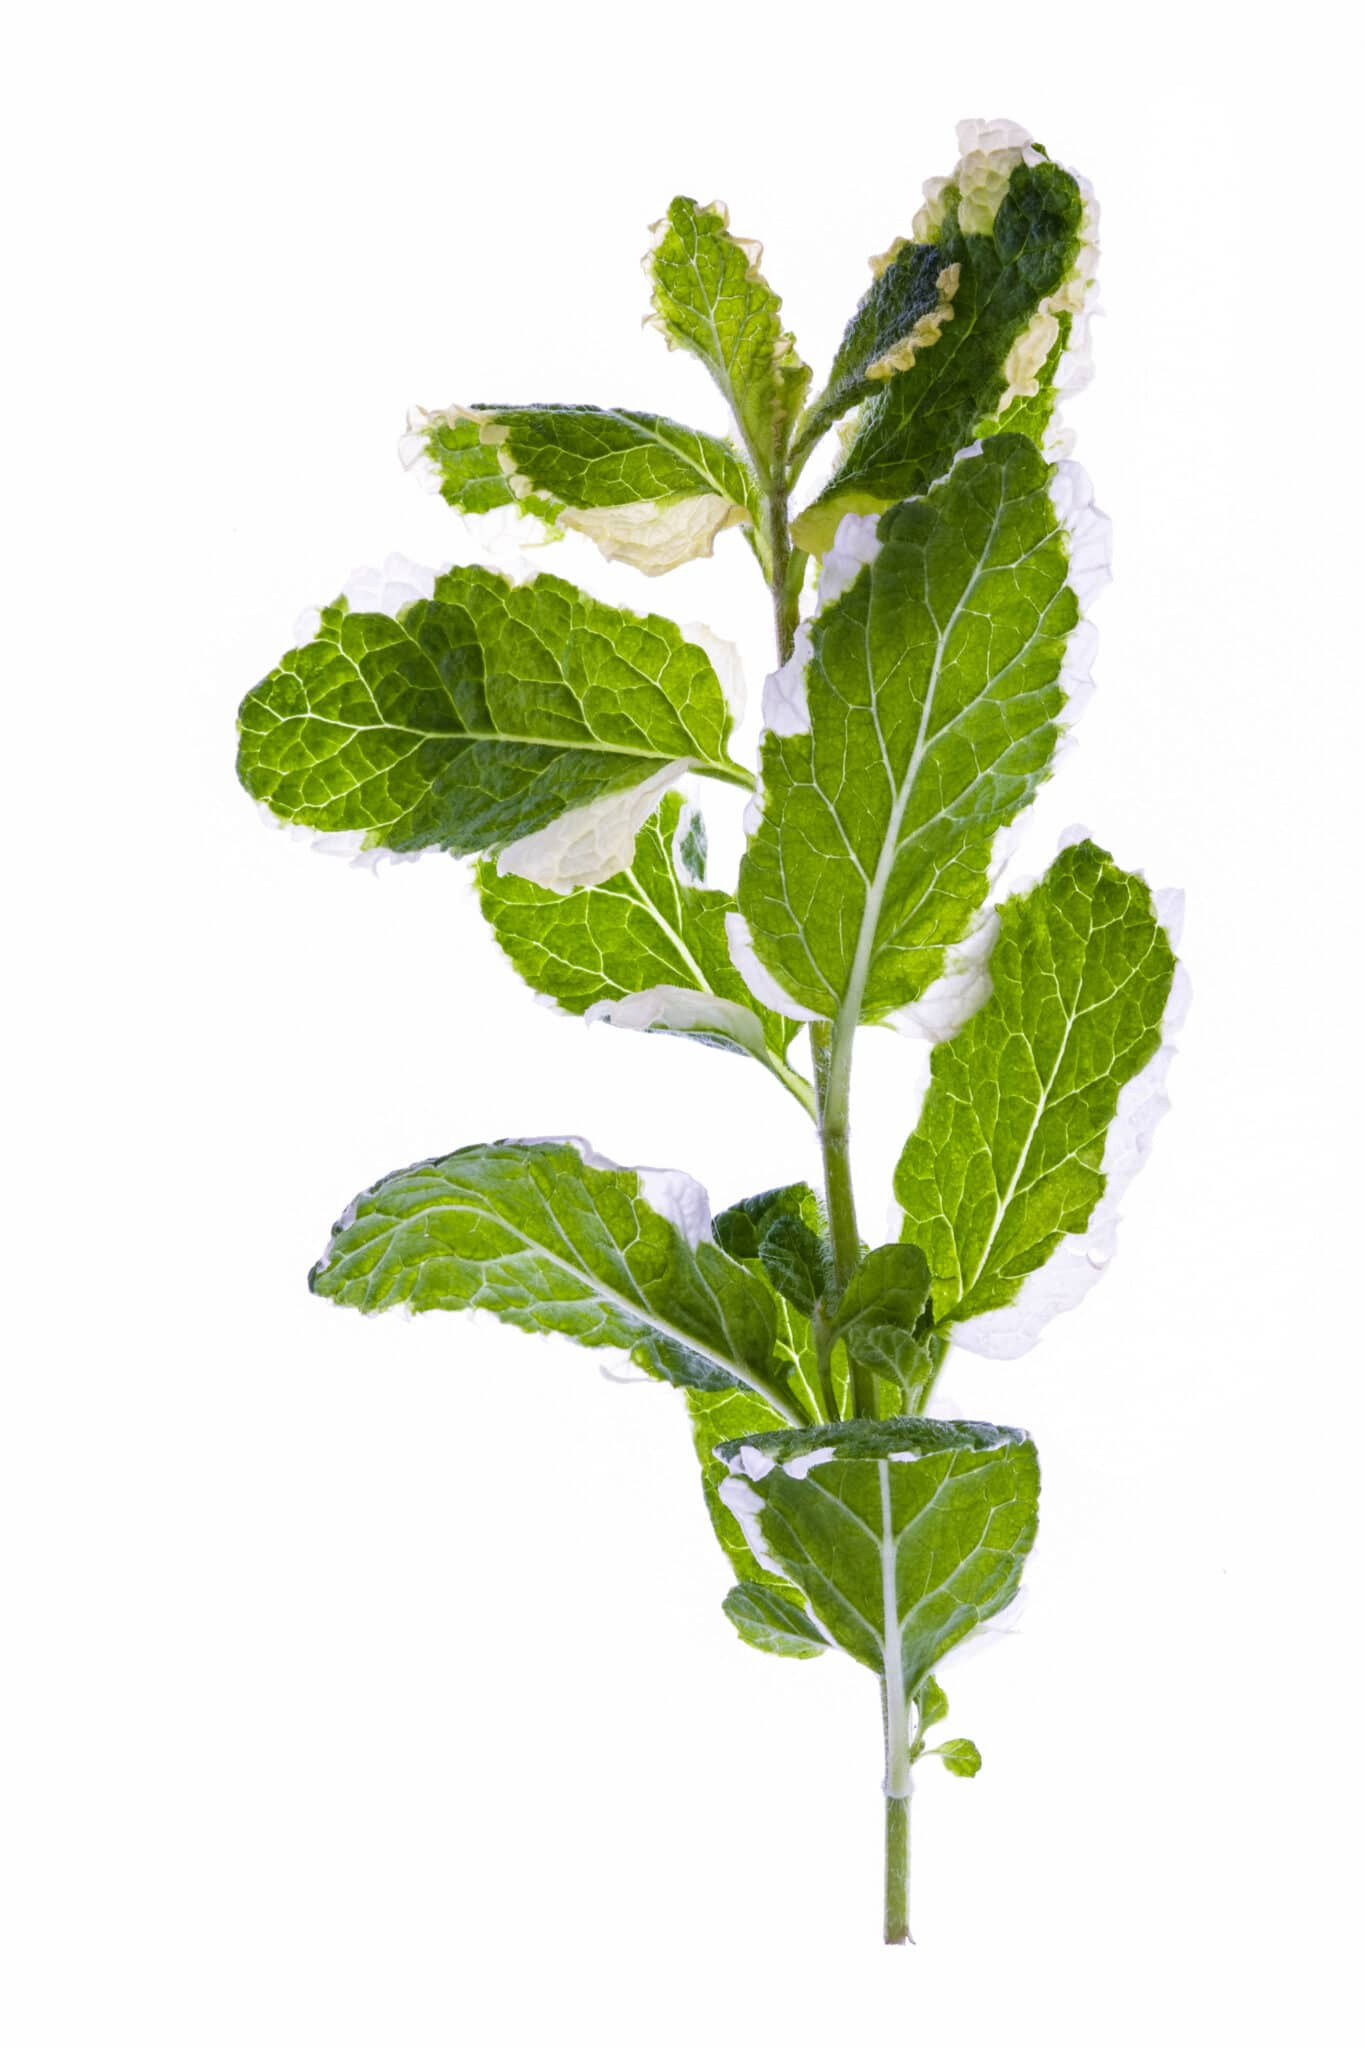 A closeup of a pineapple mint branch on a white background, showing the white bordered leaves unique to these types of mint.